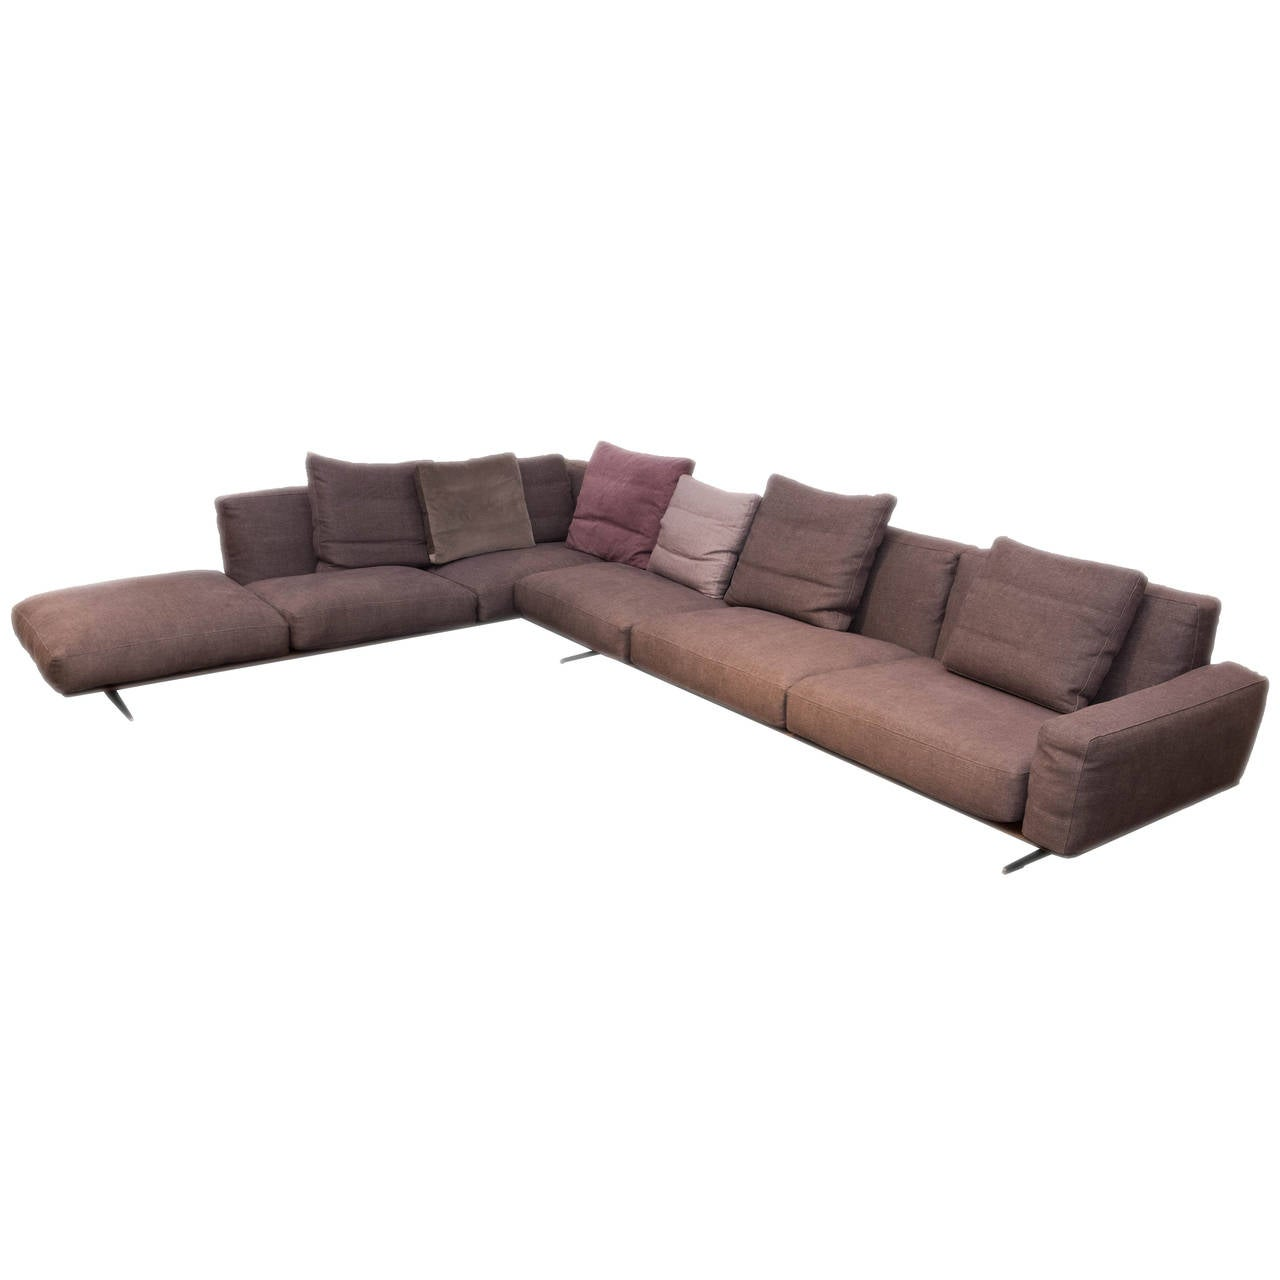 Flexform Sectional Sofa Pleasure Modular